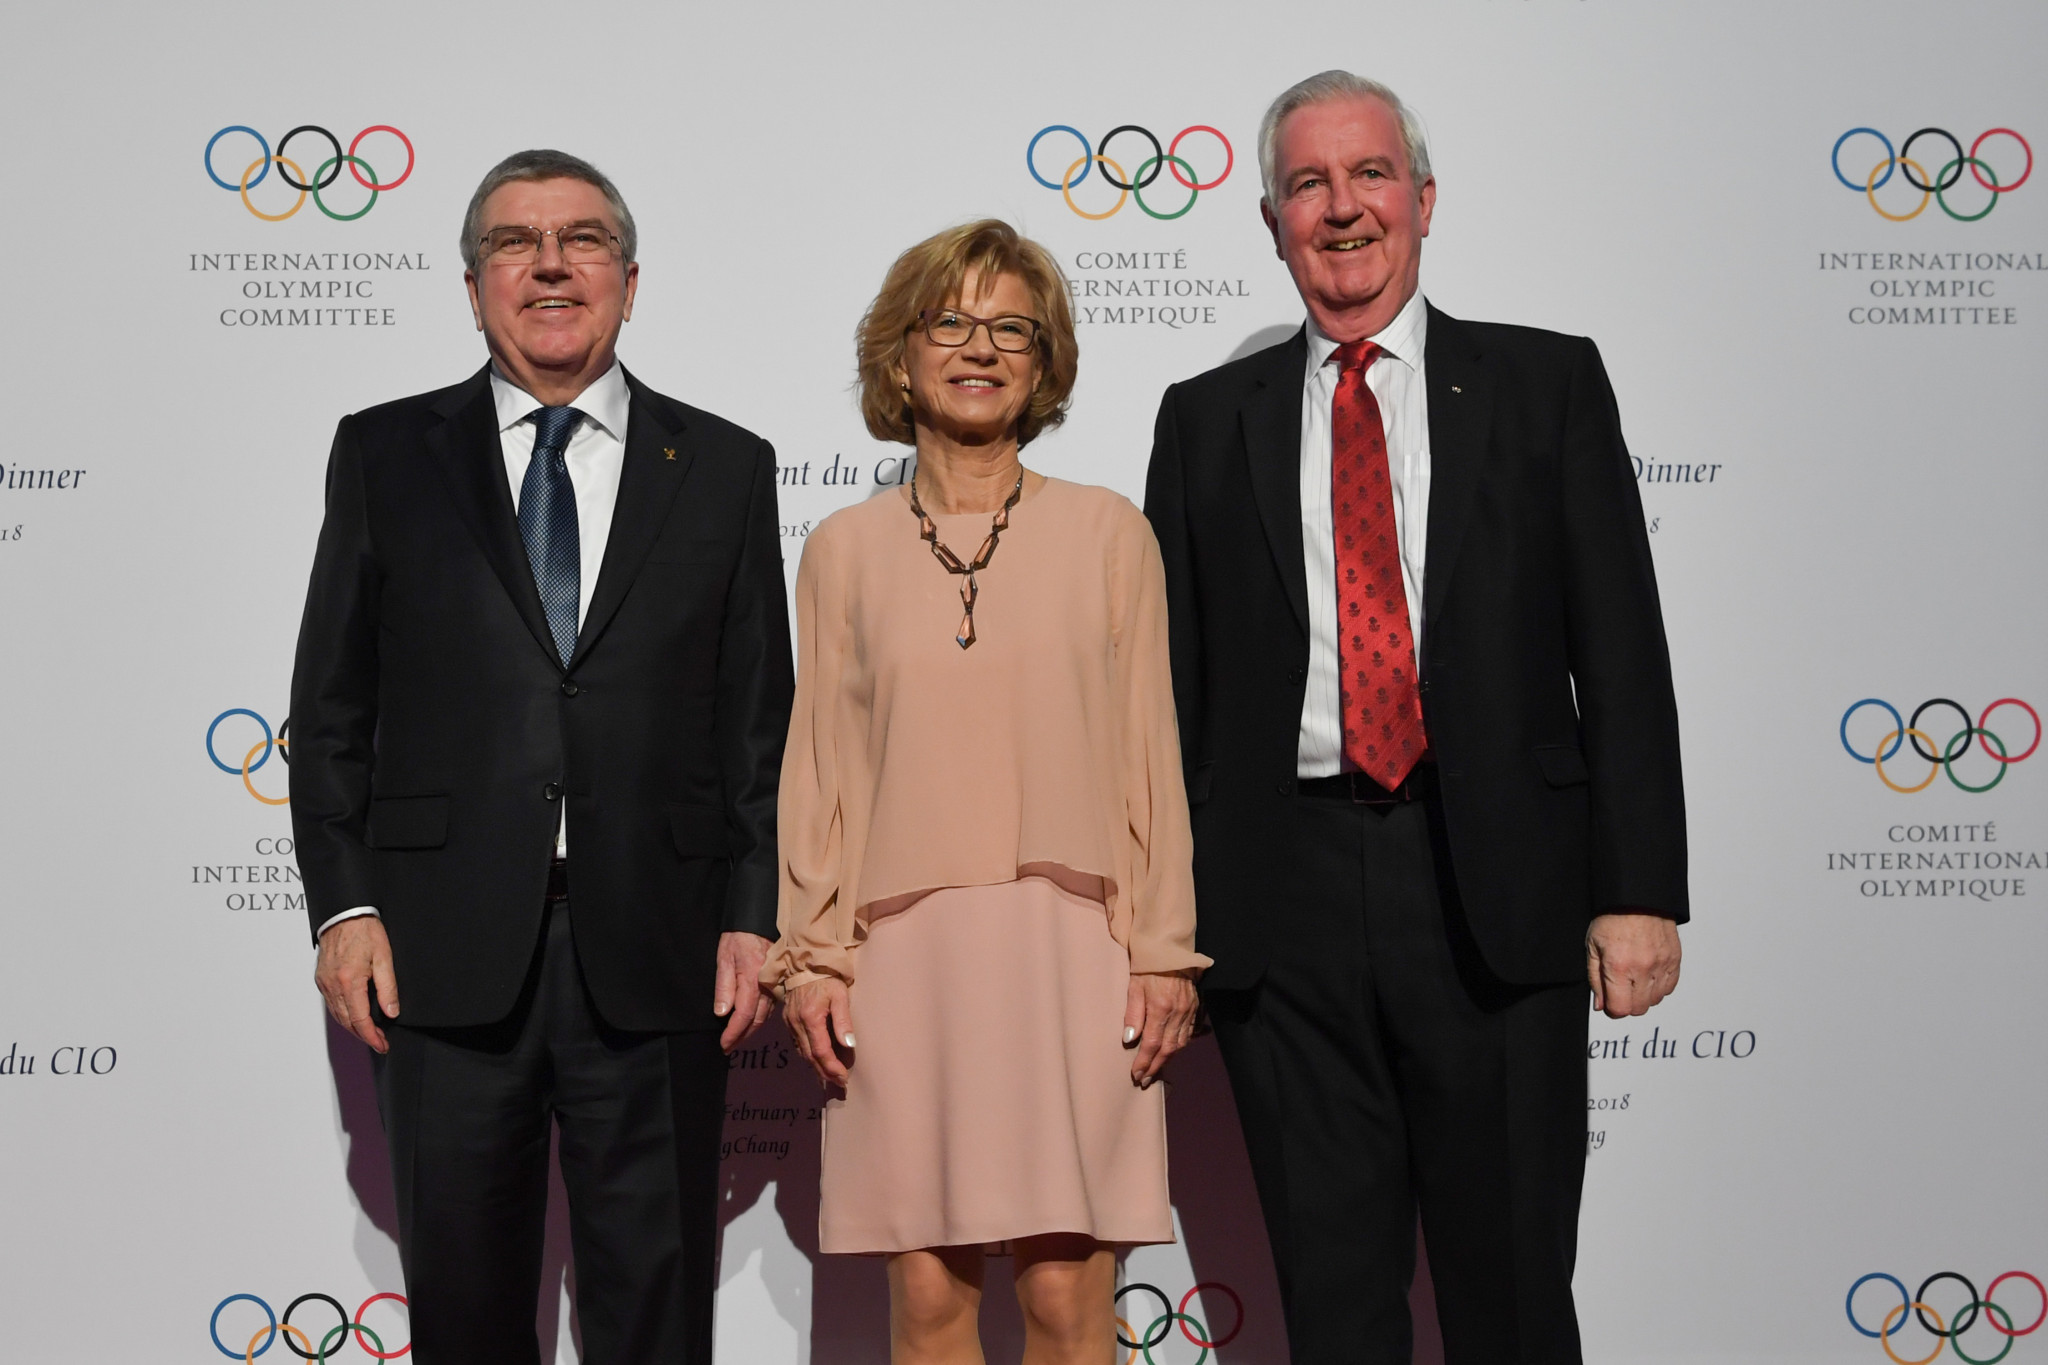 IOC President Thomas Bach and WADA counterpart Sir Craig Reedie are both desperate for the saga to end ©Getty Images